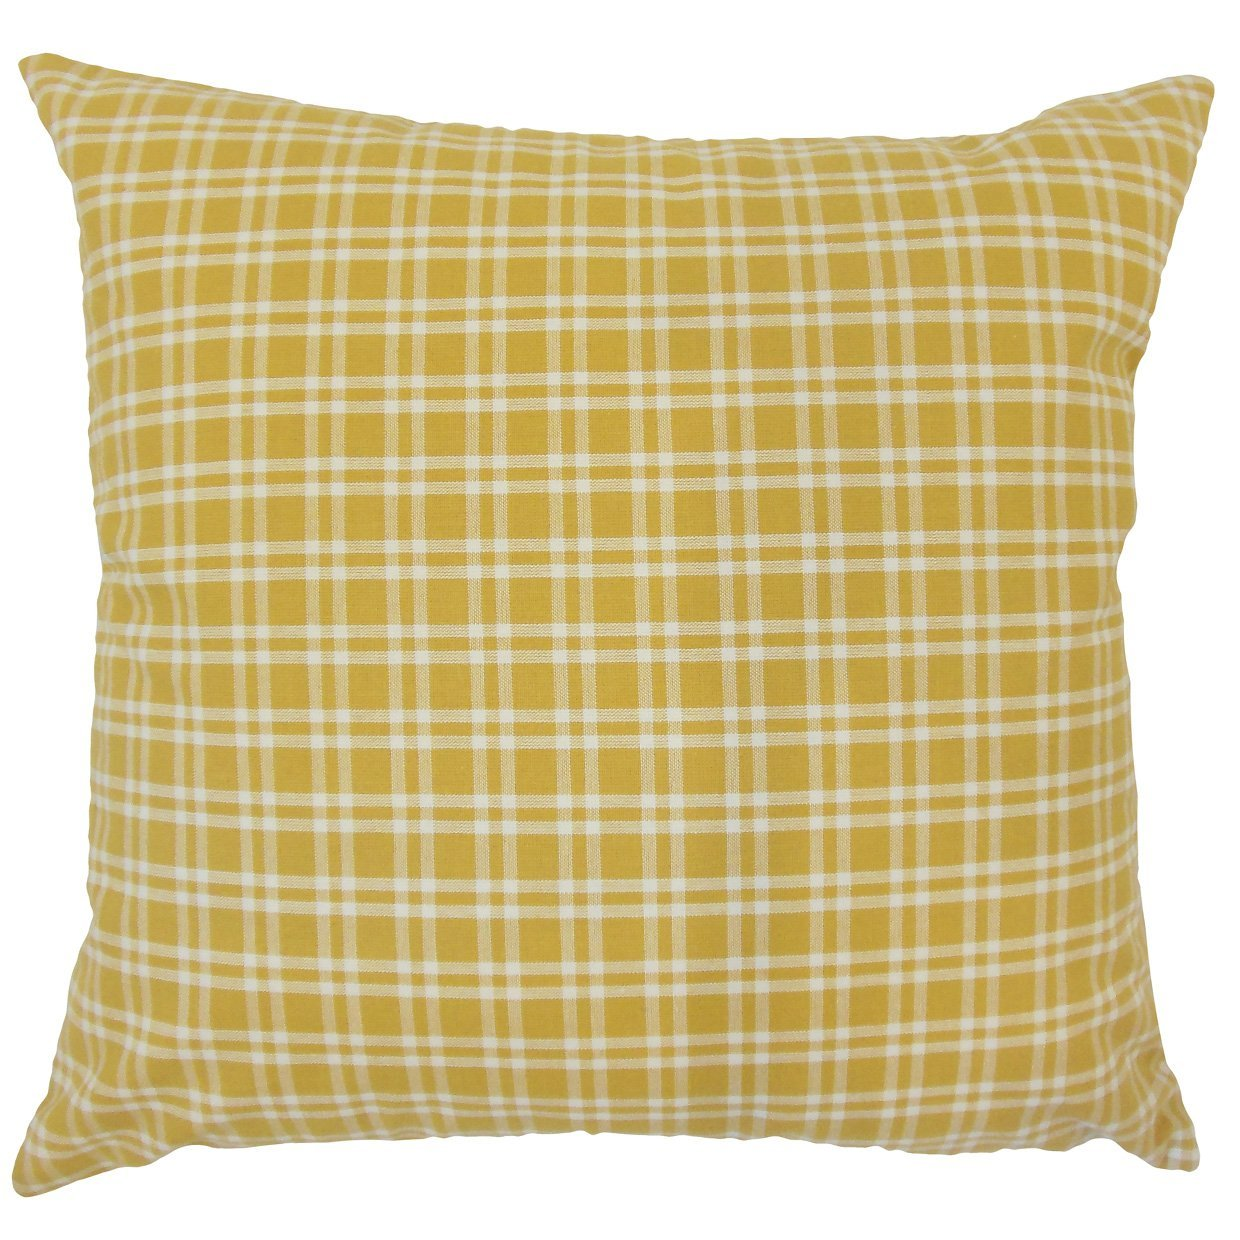 Bissonnette Throw Pillow Cover